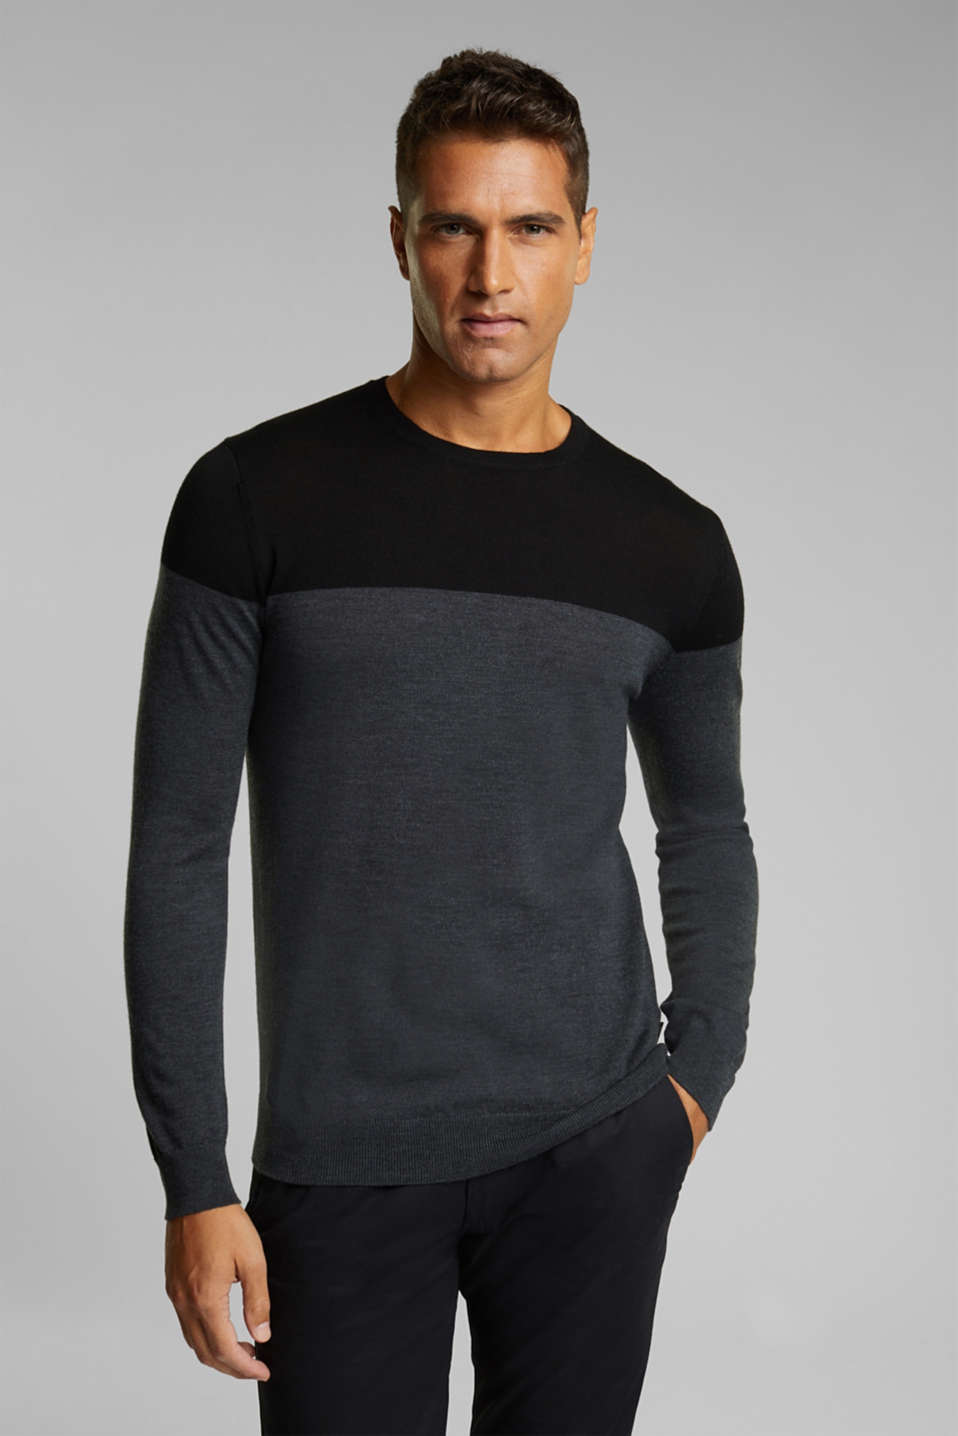 Esprit - 100 % laine mérinos : le pull-over colour blocking